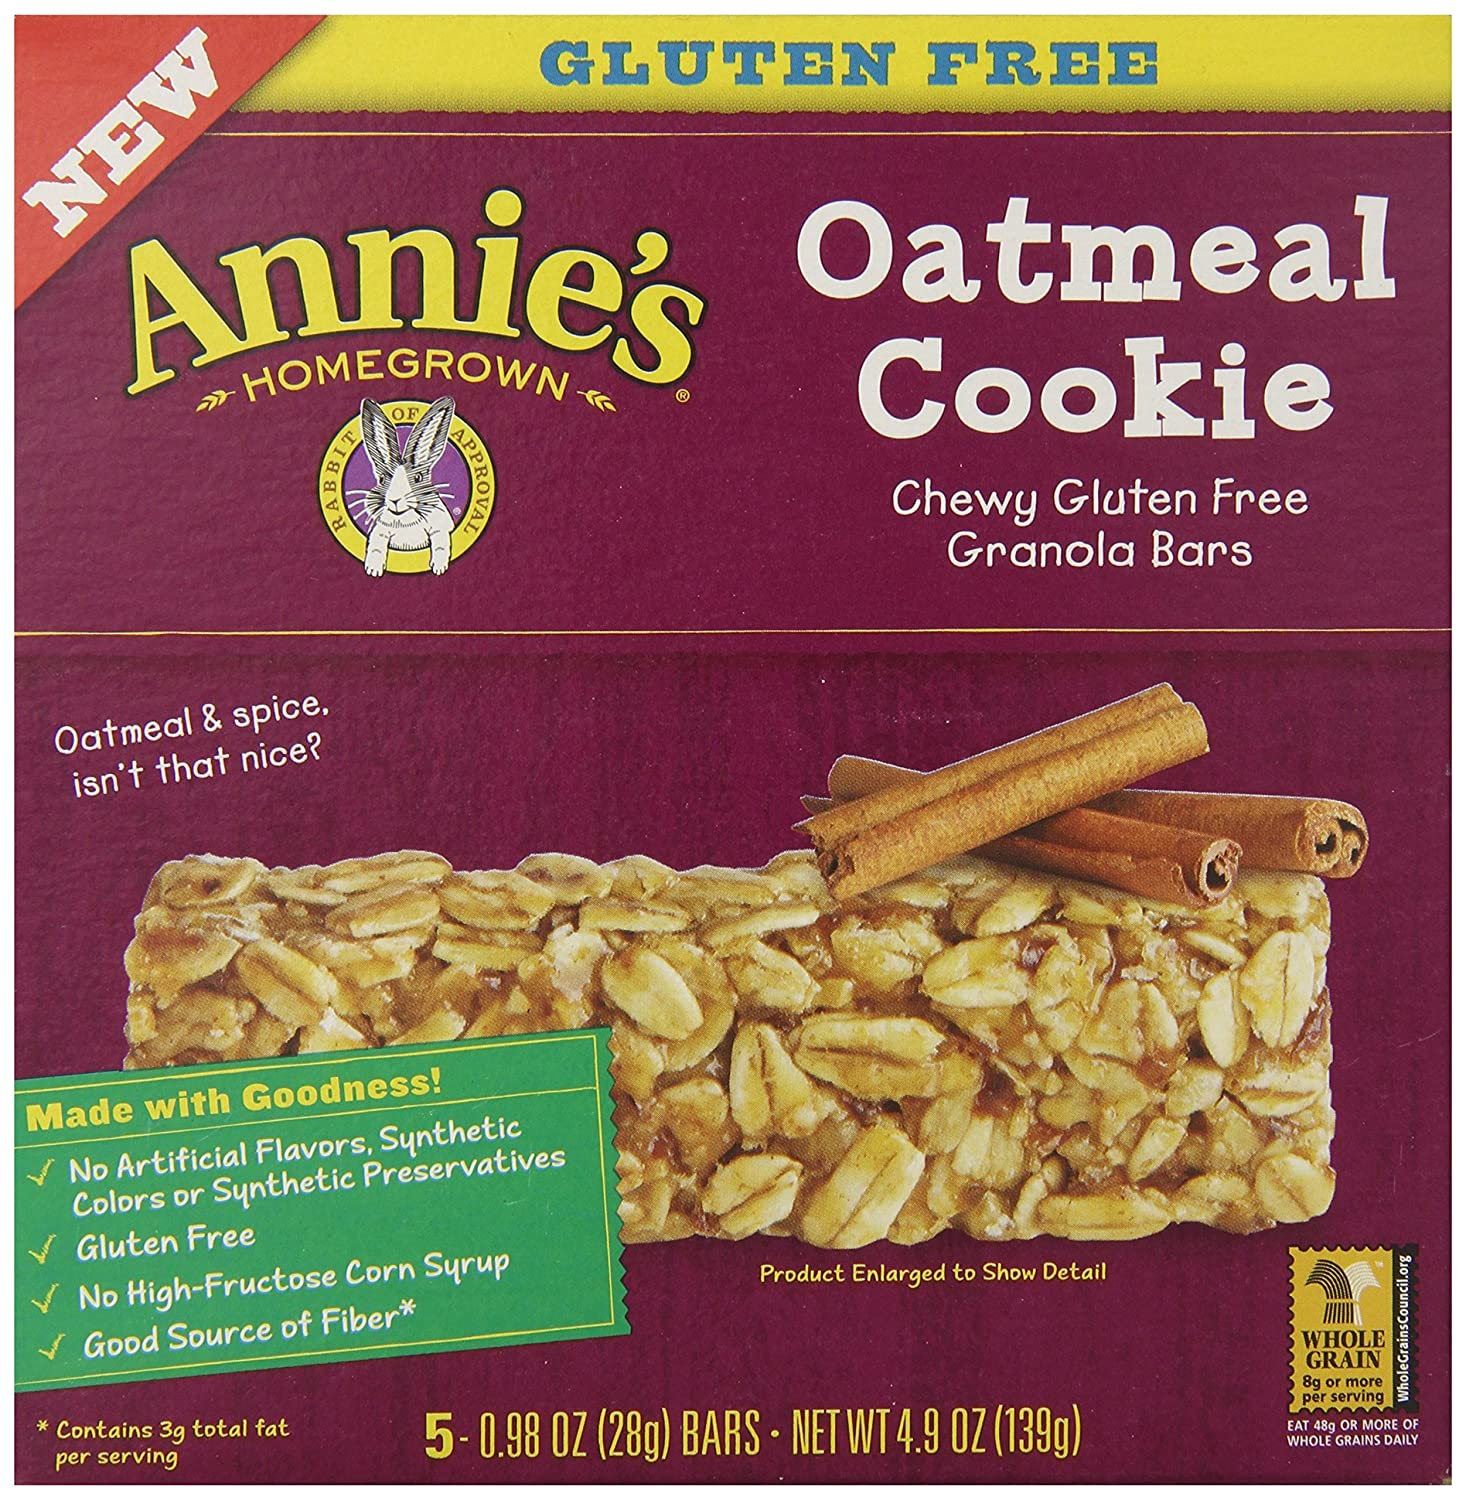 Amazon - 5-Ct Annie's Chewy Gluten Free Granola Bars - $1.99